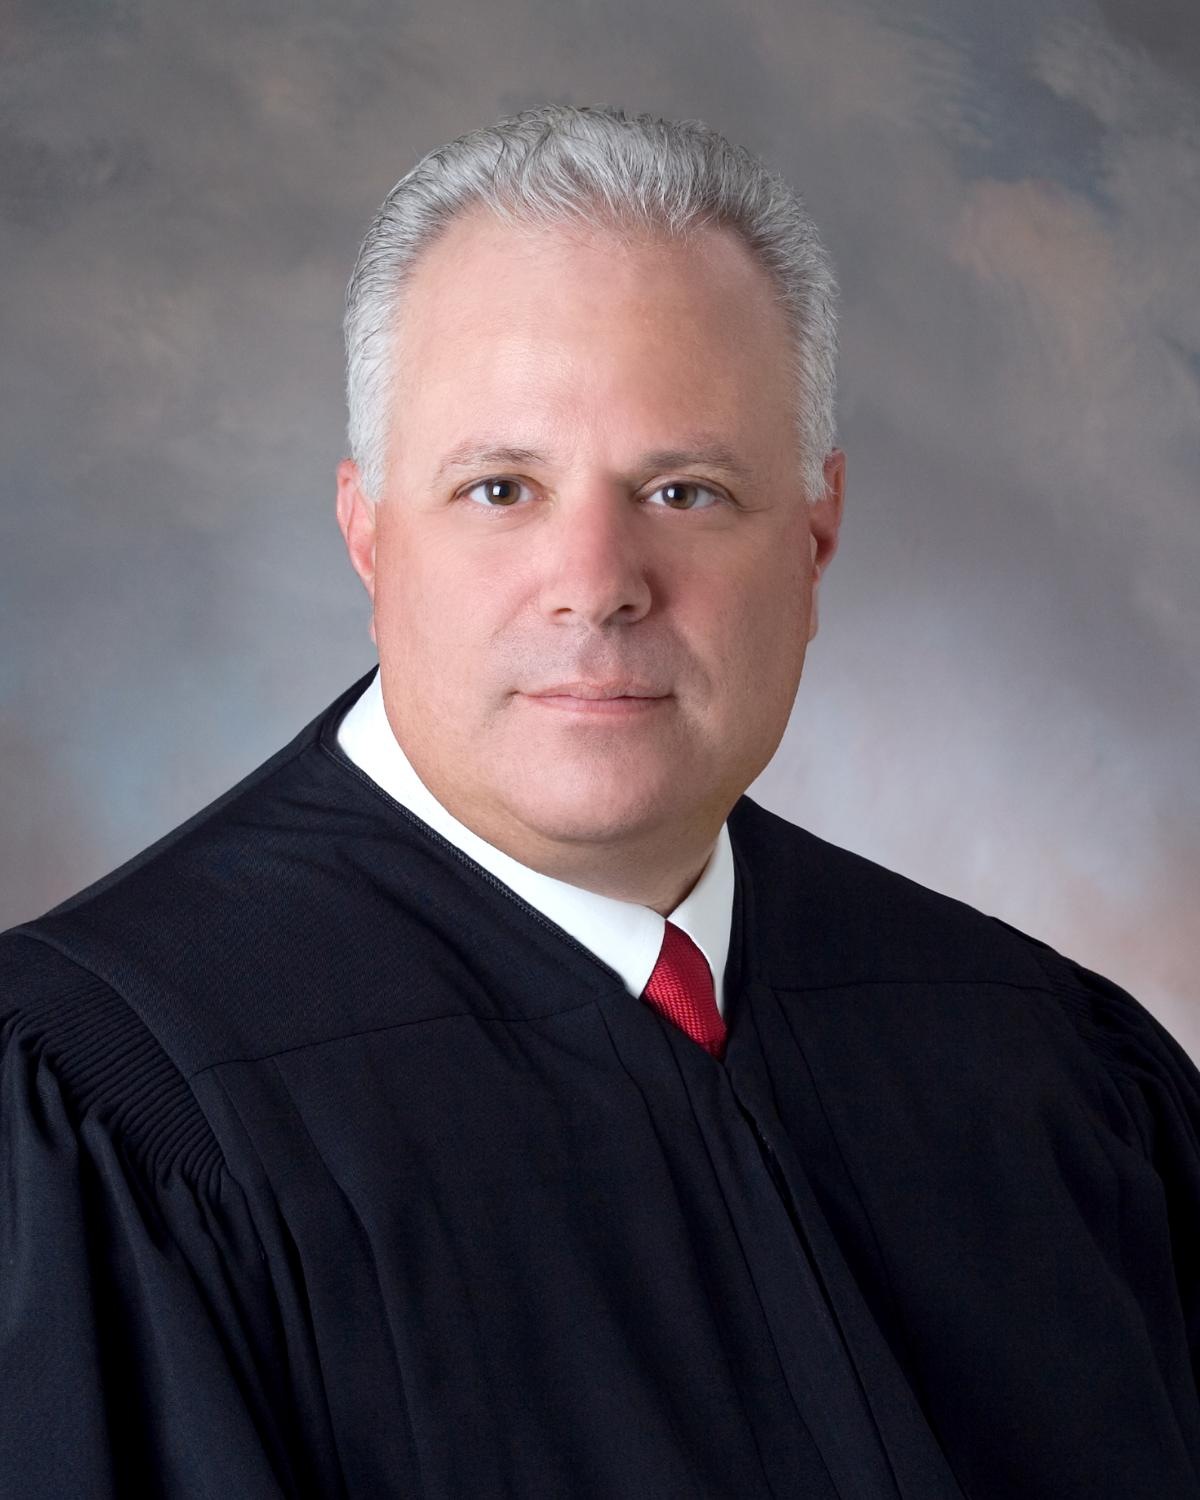 Photo of Circuit Judge John D. Galluzzo. Opens in new window.